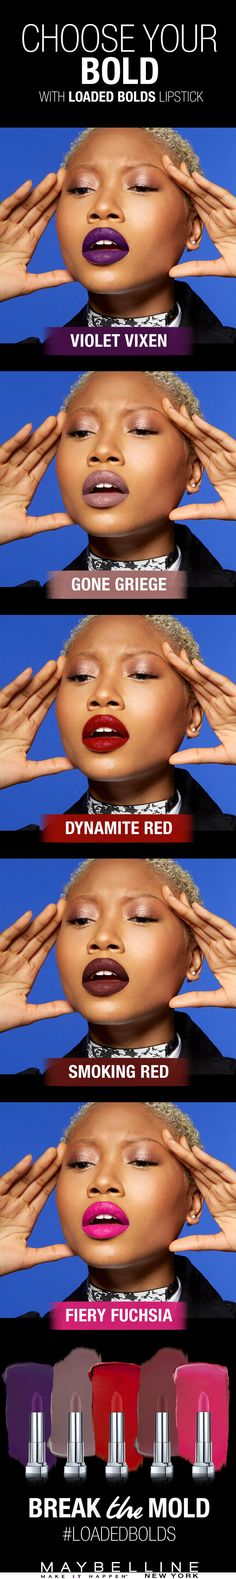 Whatever your current mood, Maybelline's Loaded Bolds has a wow lipstick to match. Think Violet Vixen', Gone Greige, Dynamite Red, Smoking Red, Fiery Fuchsia and even more go-get-'em colours. Pair yours with a natural look or go full-on bold with a dramatic smoky eye. Go ahead and put your boldest lips forward.